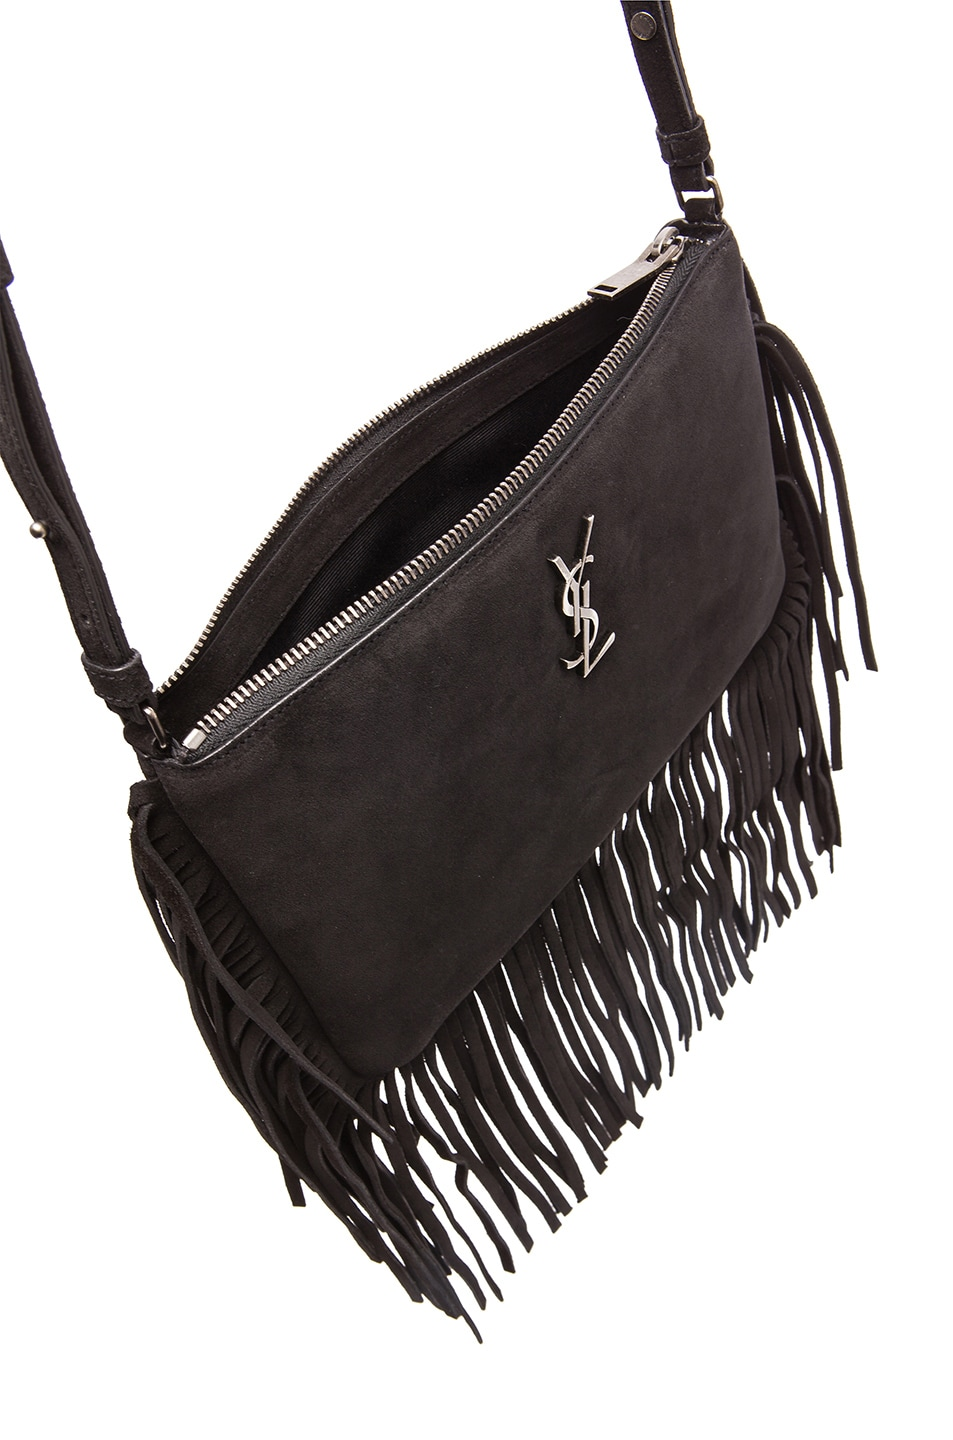 ysl cabas chyc shoulder bag - monogram suede fringe-edge crossbody bag, black